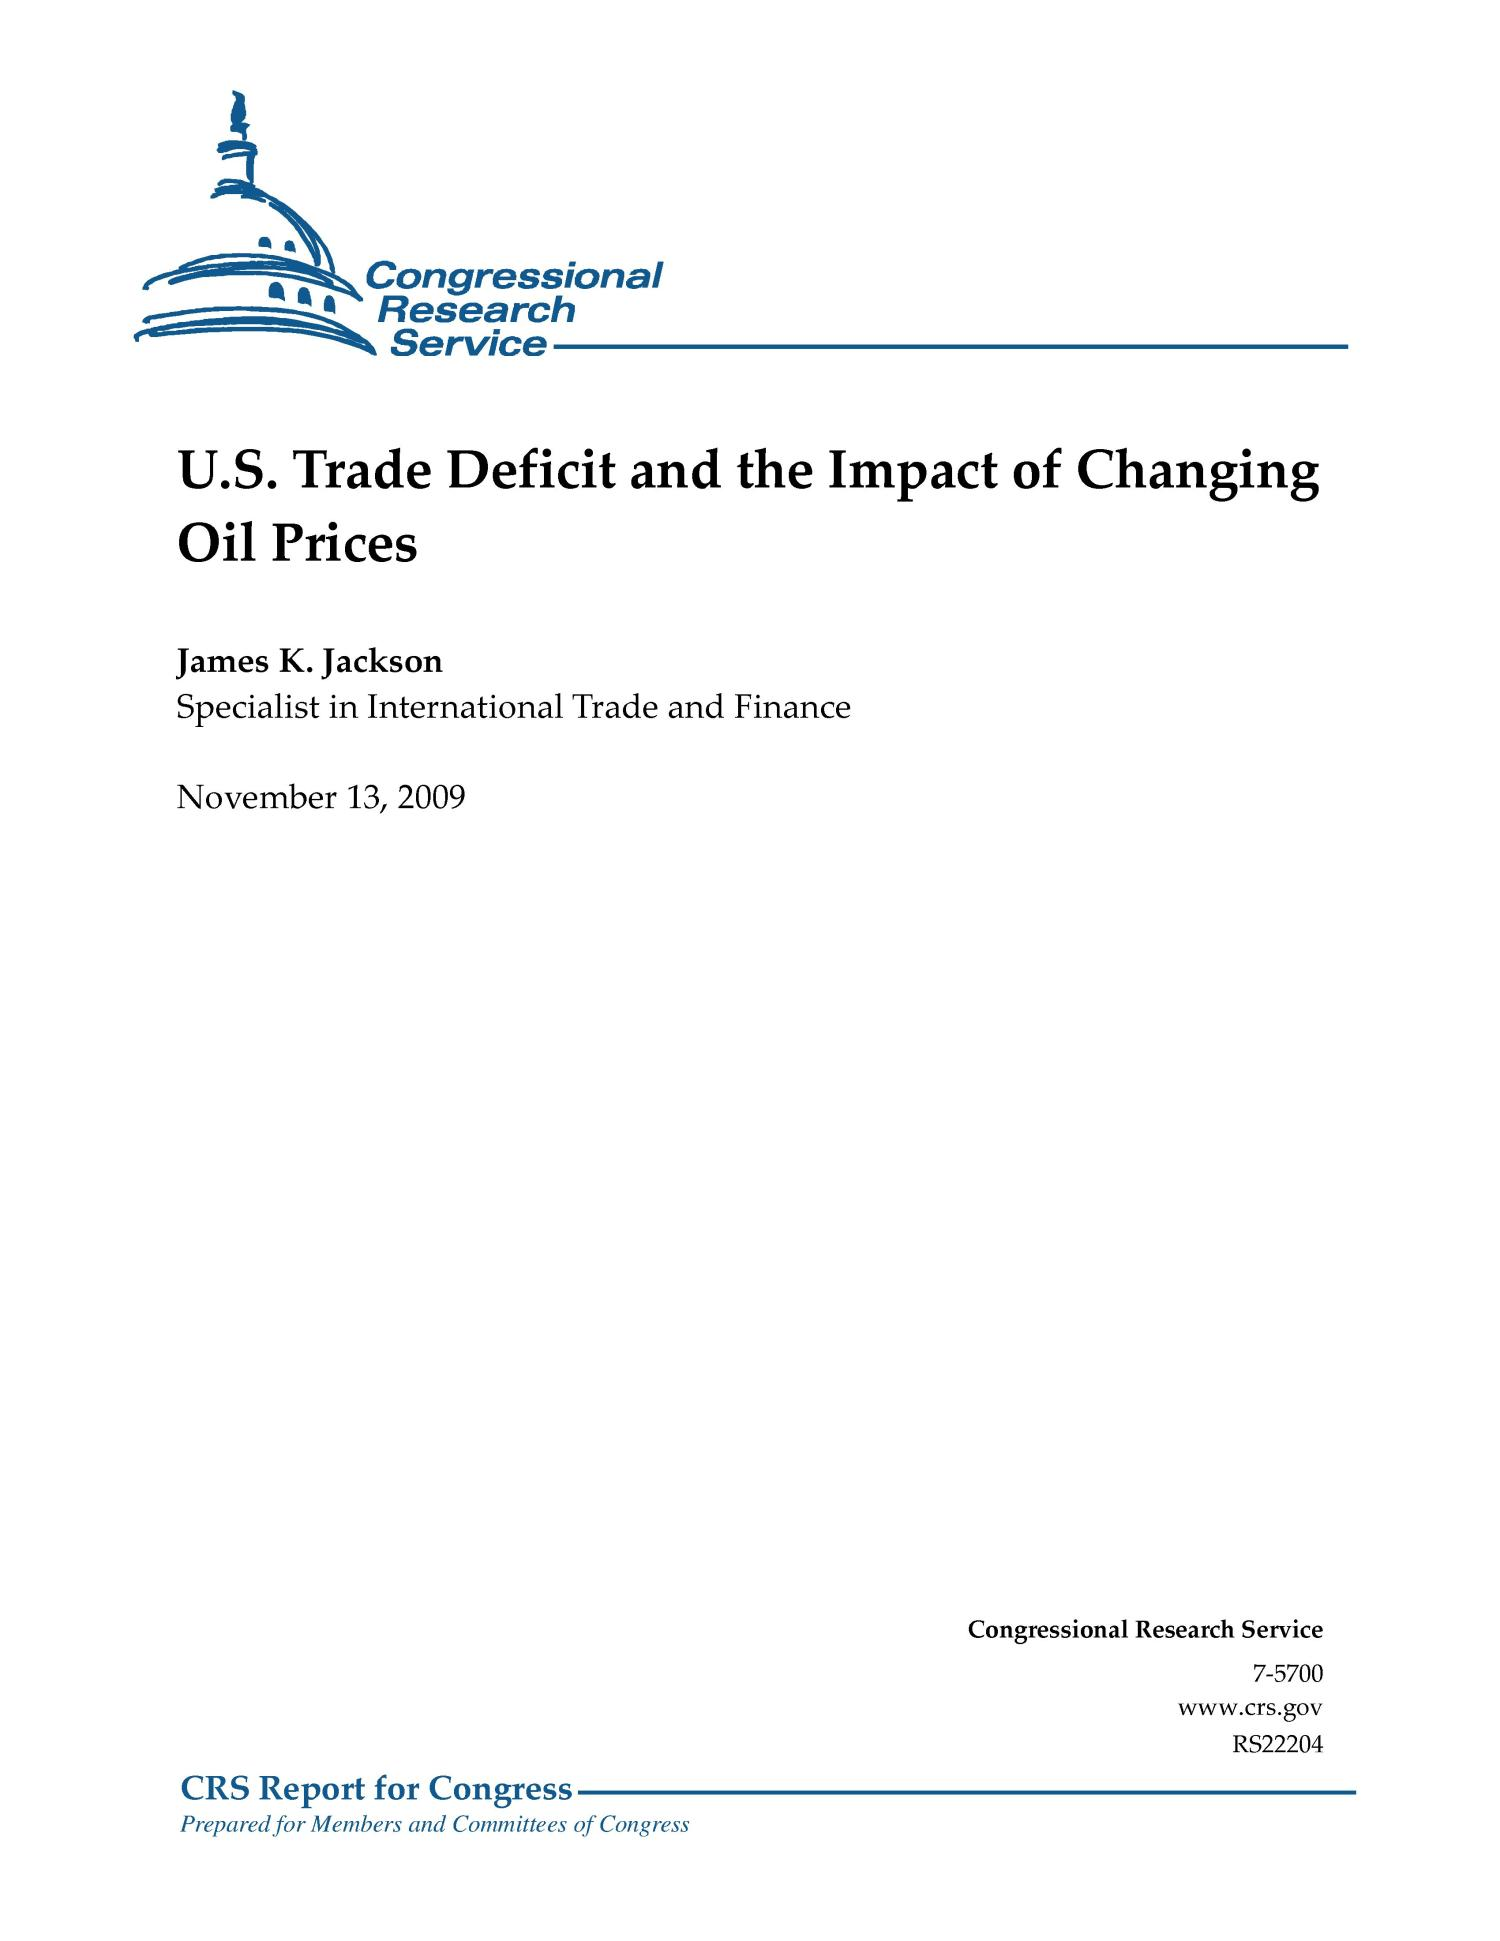 U.S. Trade Deficit and the Impact of Changing Oil Prices                                                                                                      [Sequence #]: 1 of 10